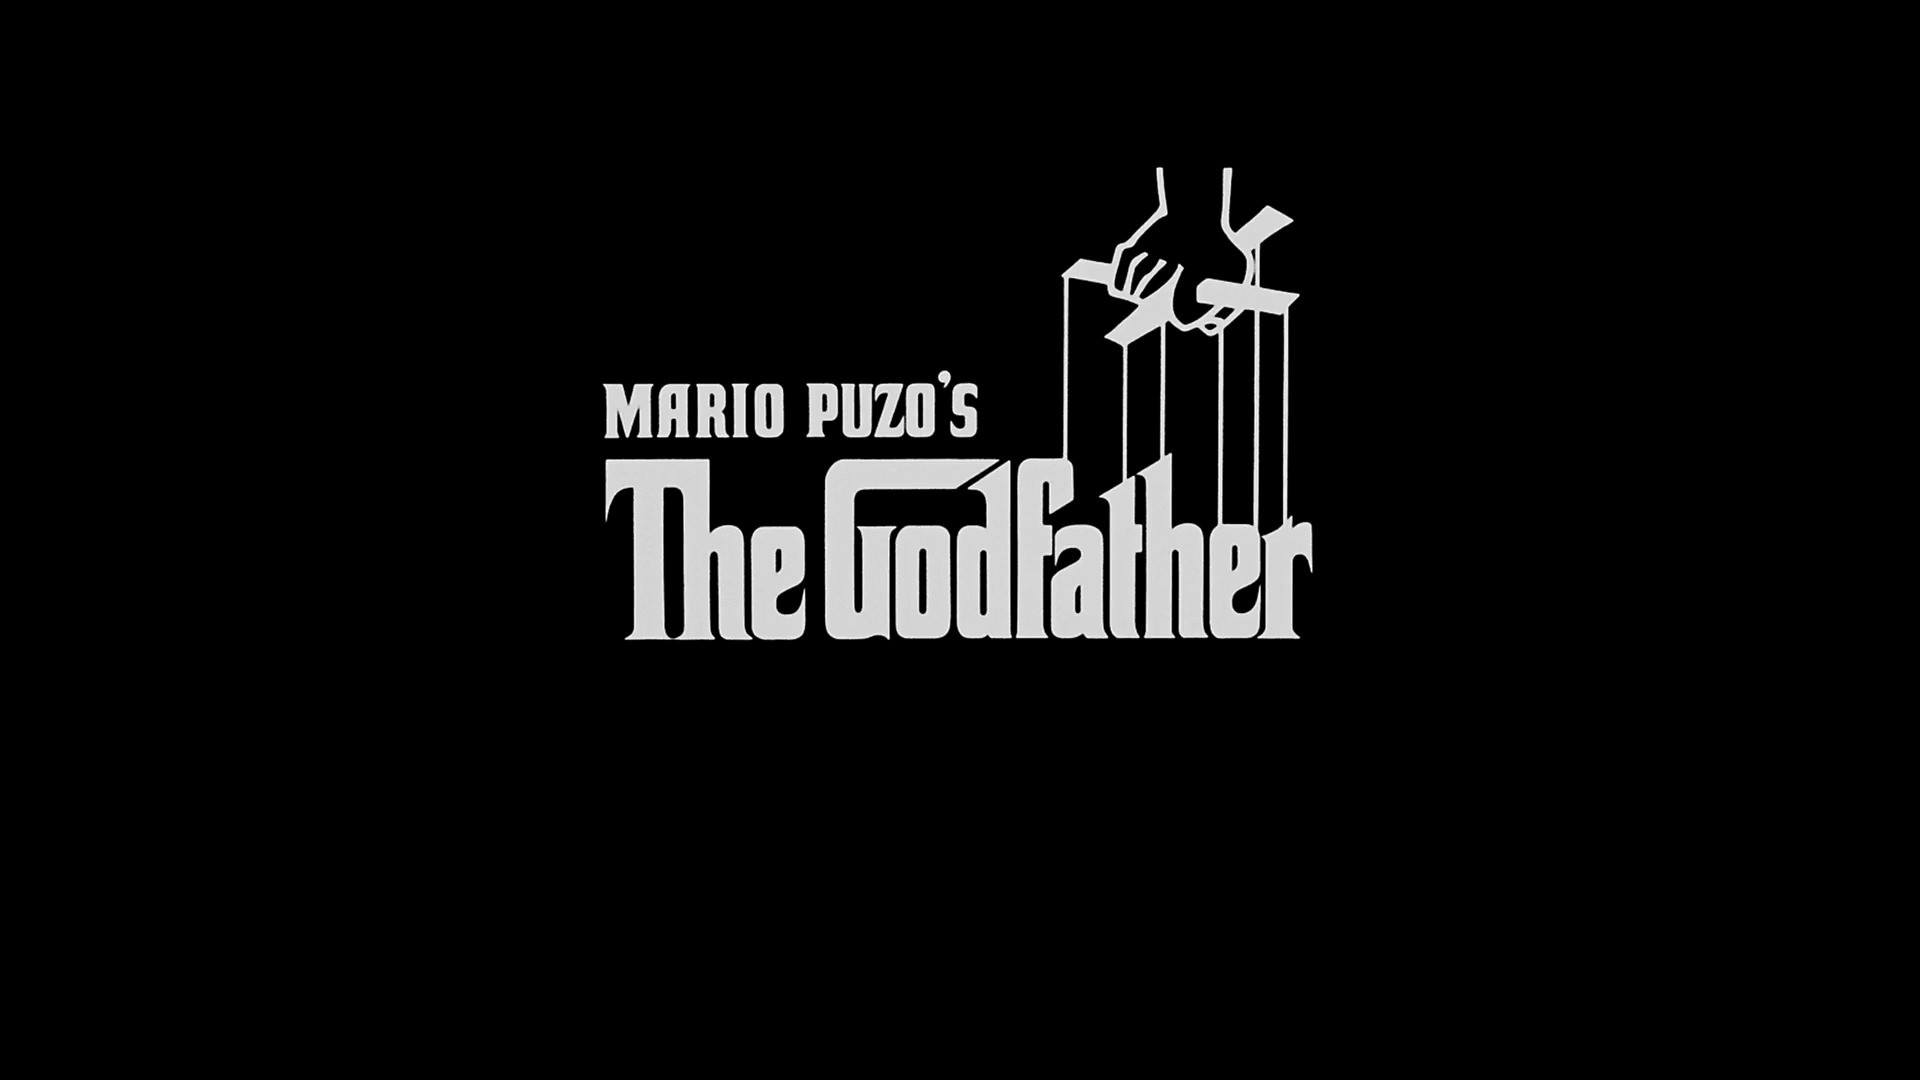 The Godfather Wallpaper 64 Images